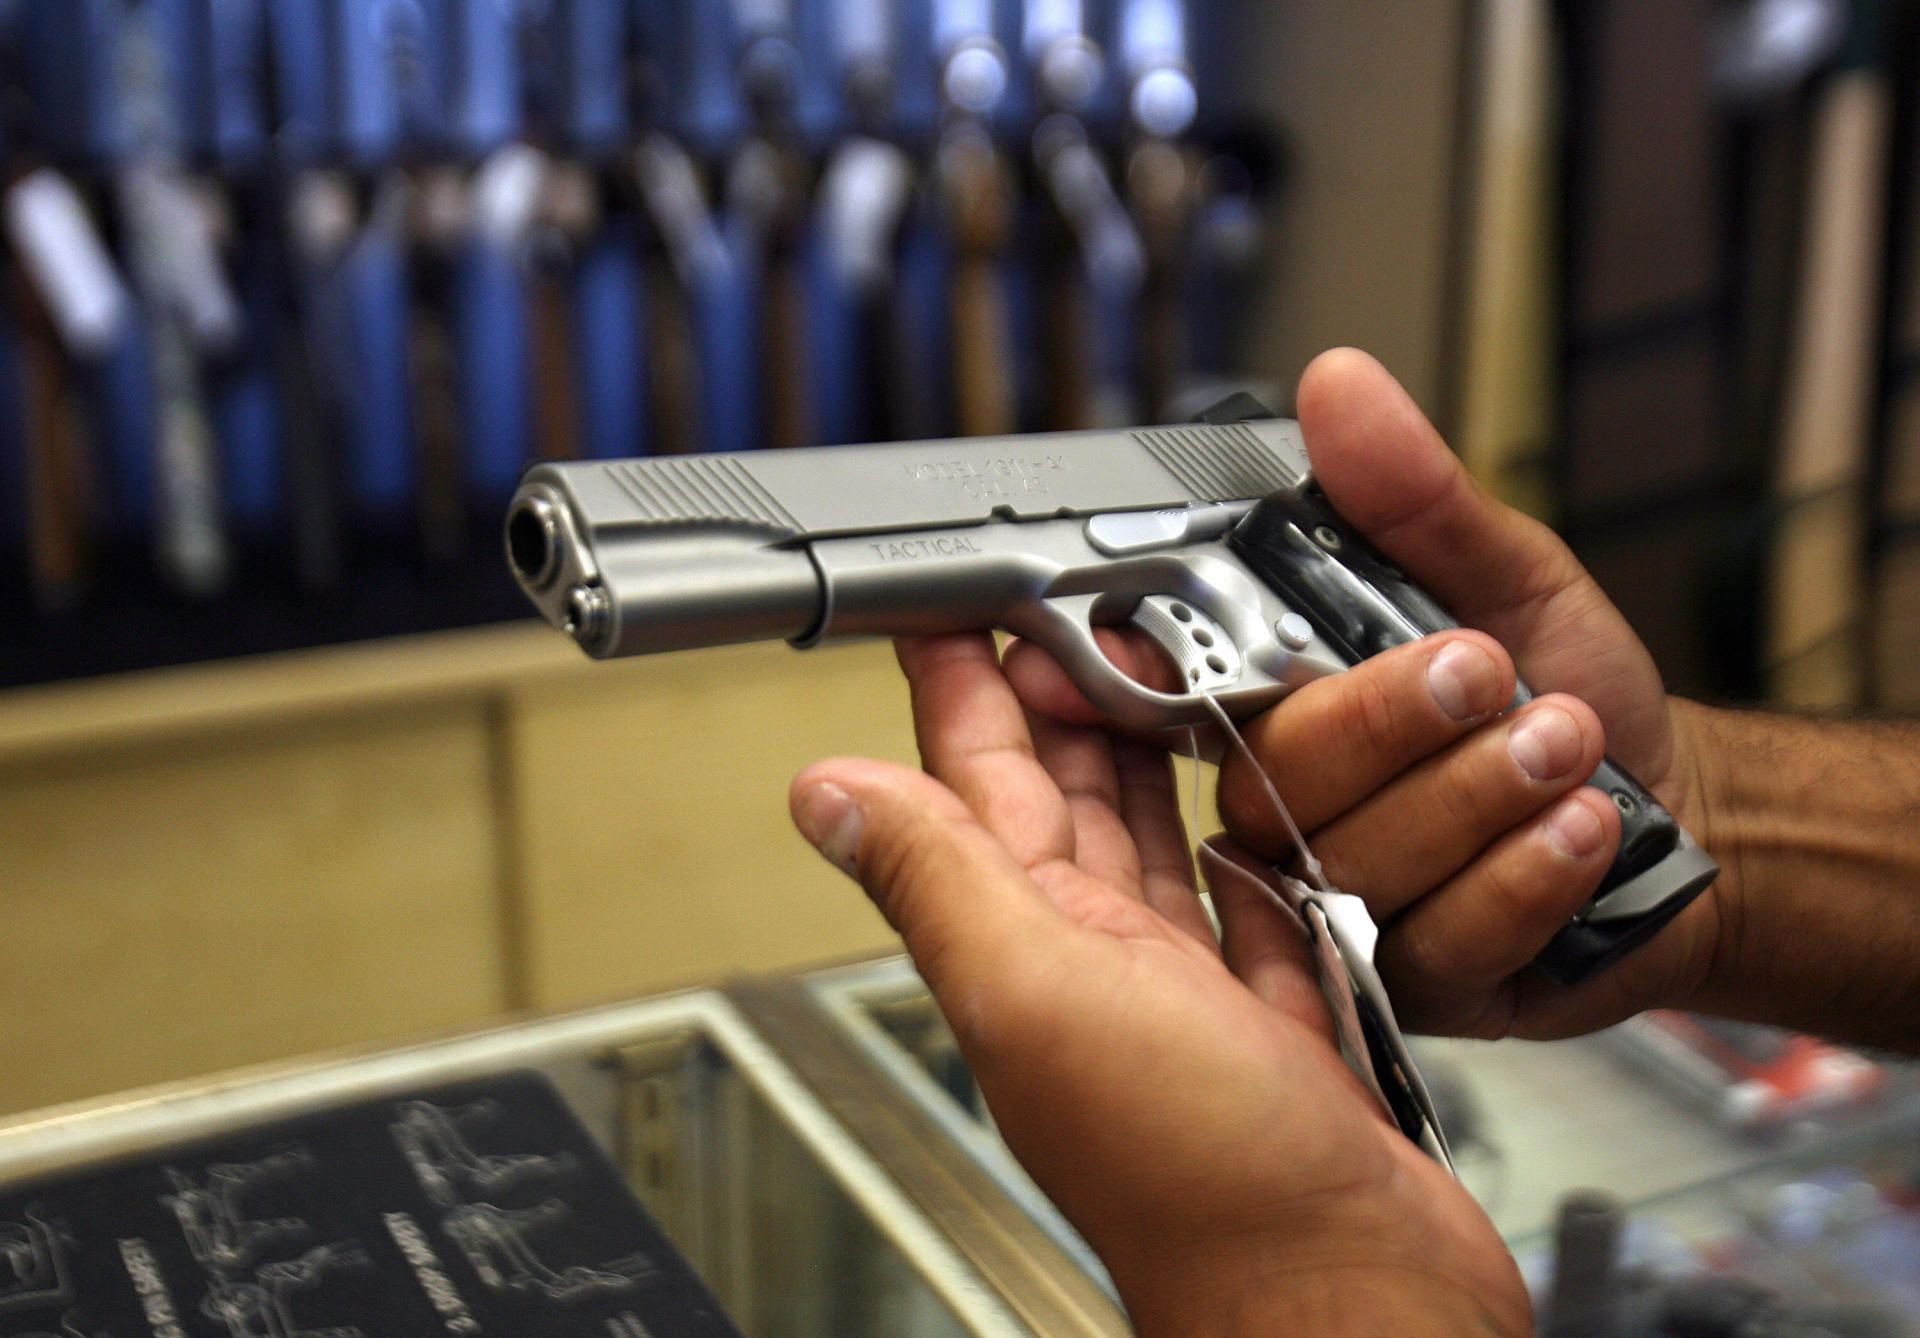 The Supreme Court concluded that people convicted of domestic violence may be banned from purchasing firearms.